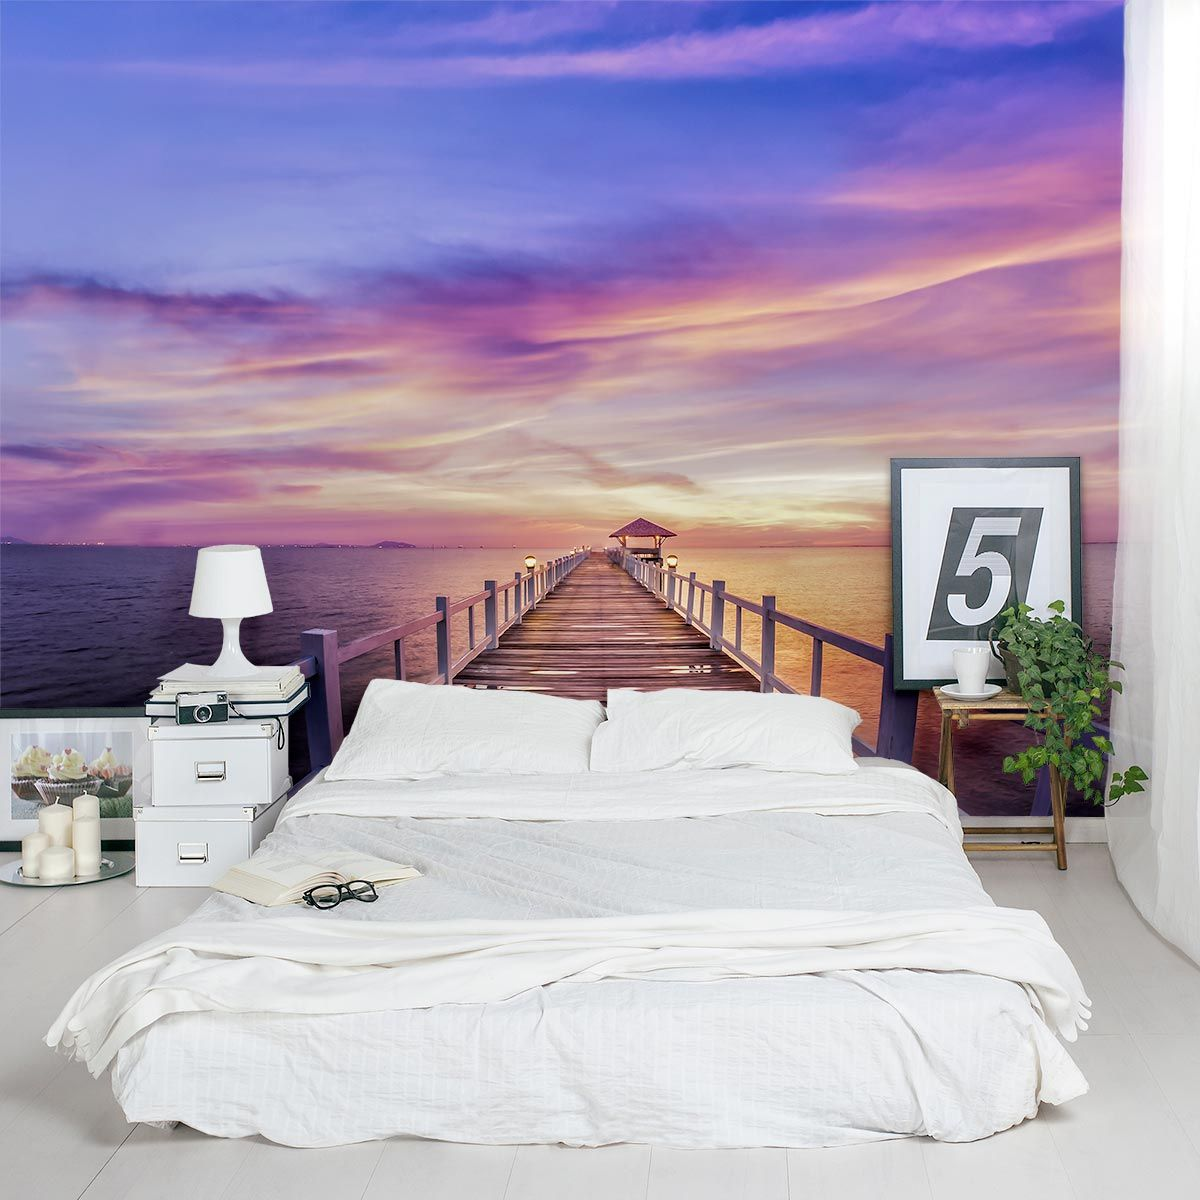 Pier Wall Bedroom Furniture Create Gorgeous Accent Walls With This Thailand Pier Sunset Wall